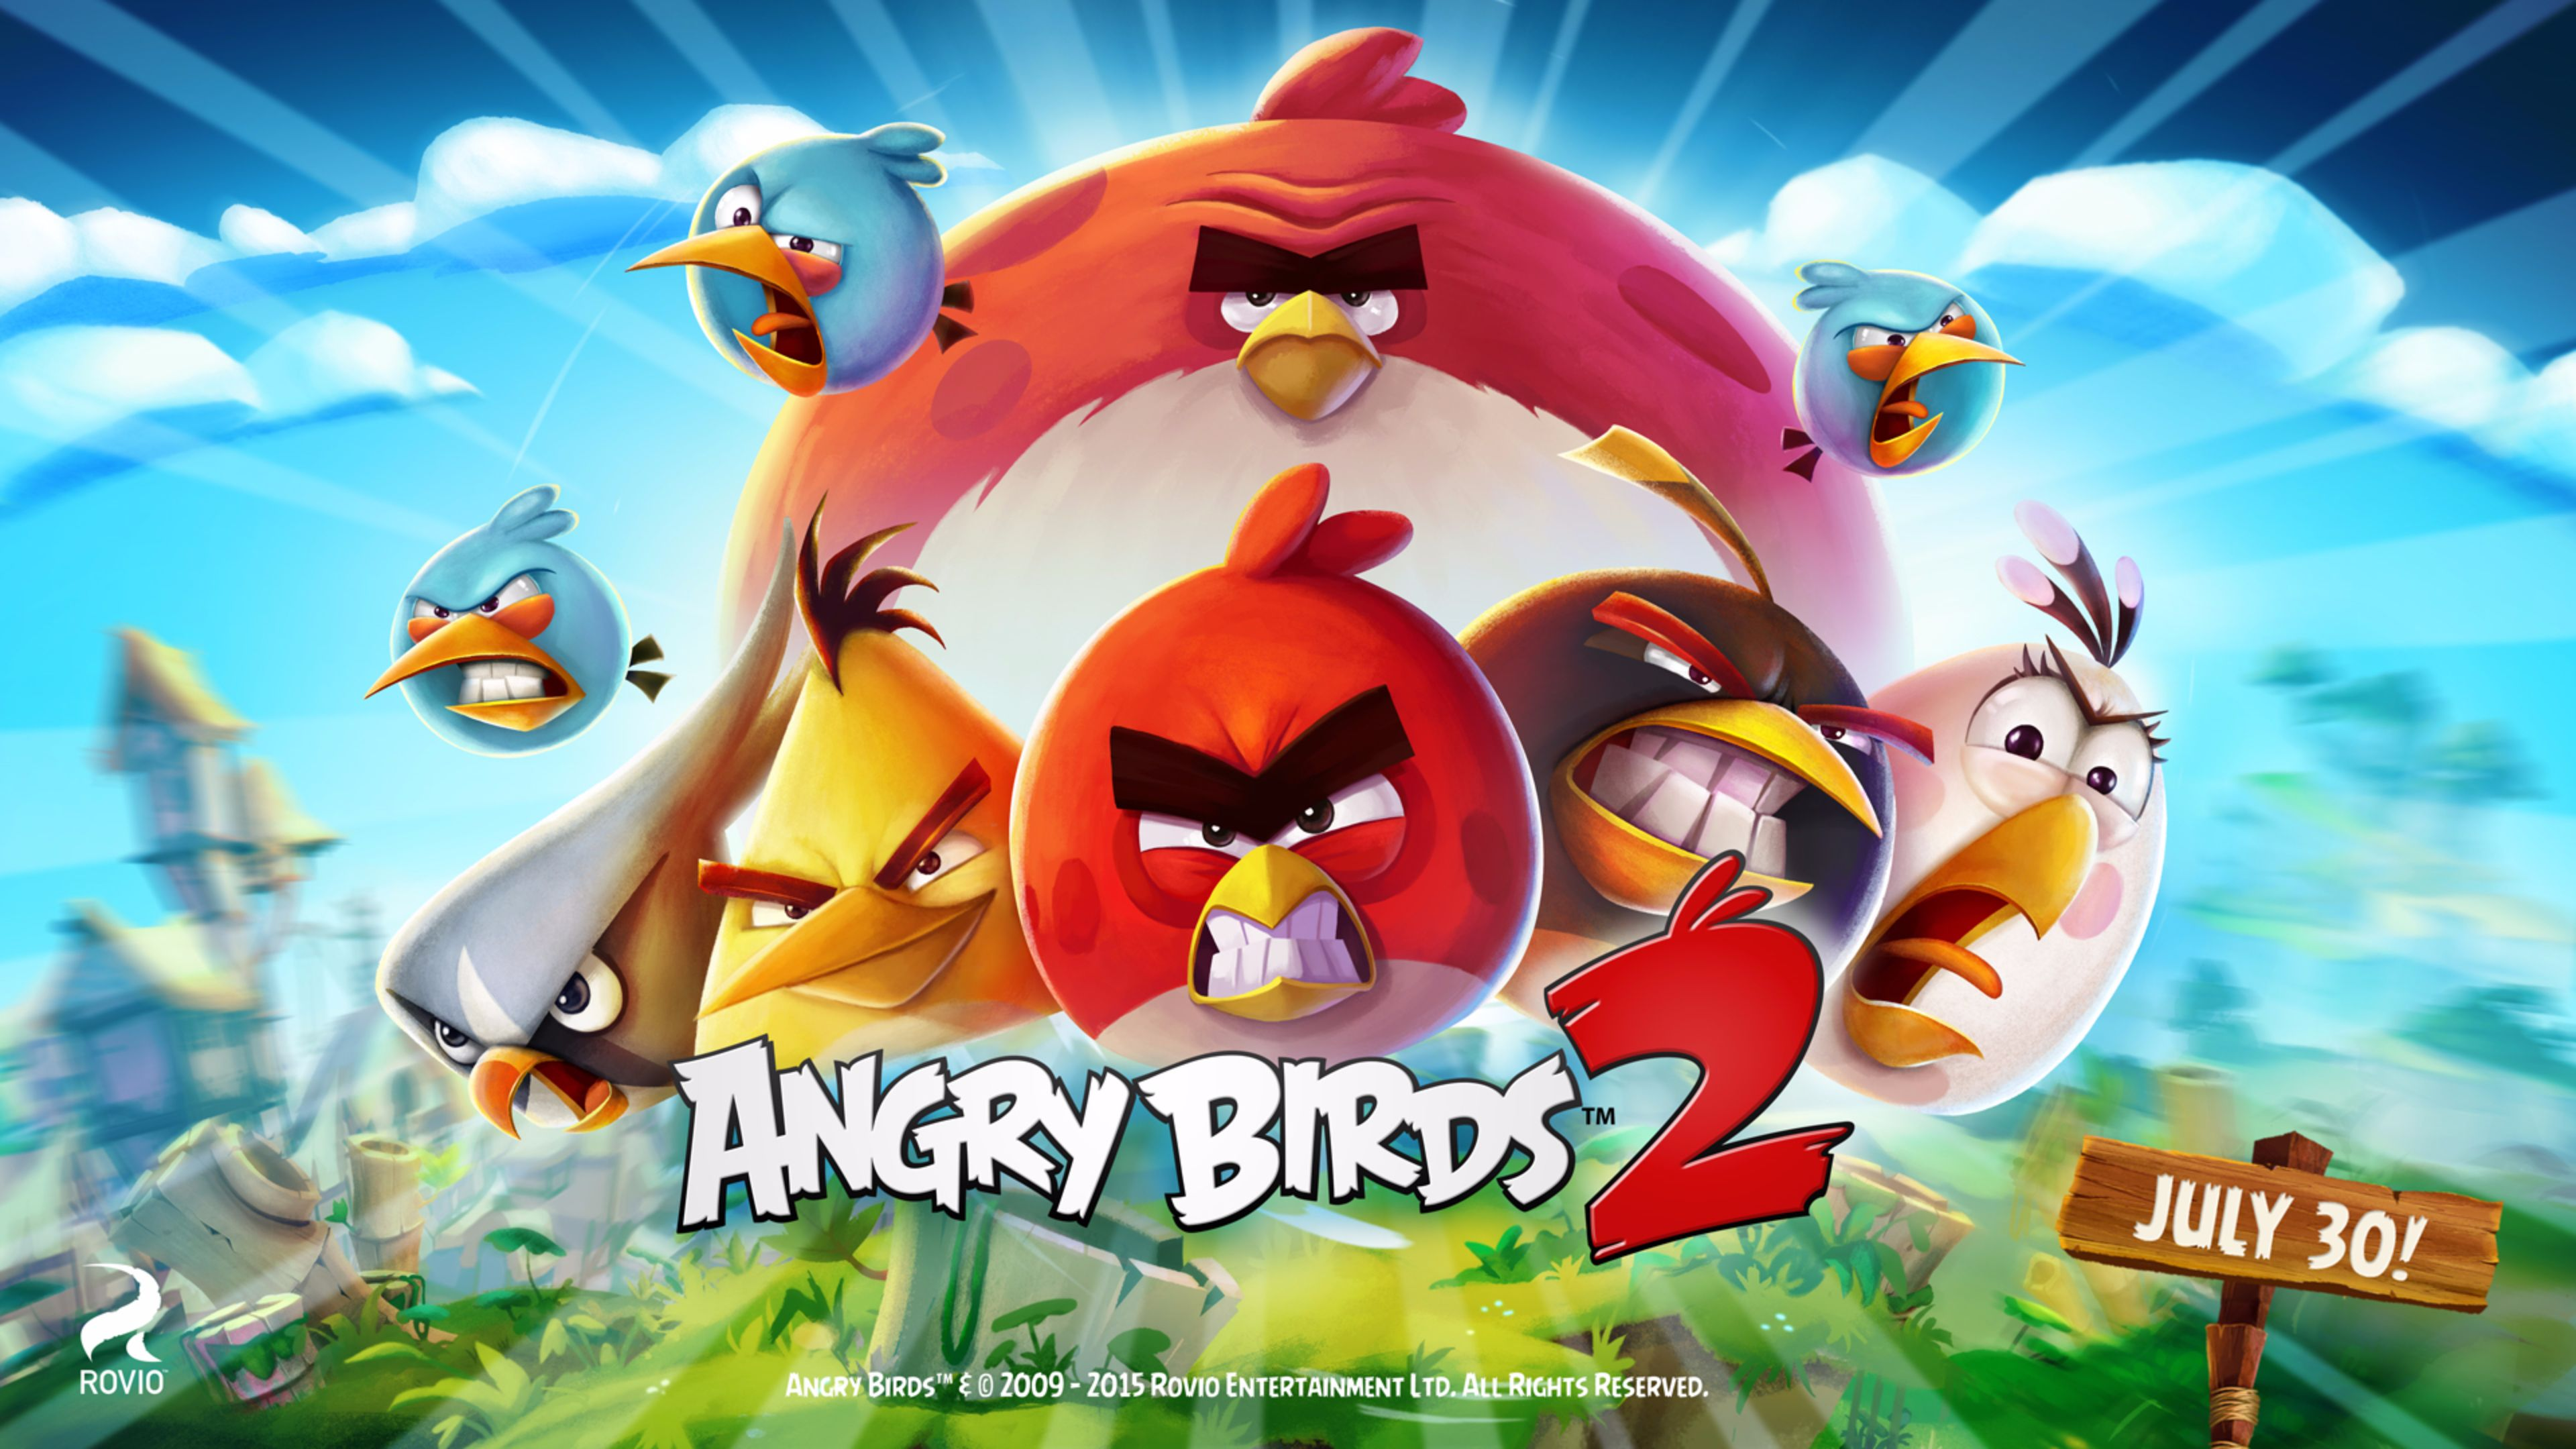 Release Date The Angry Birds Movie wallpaper